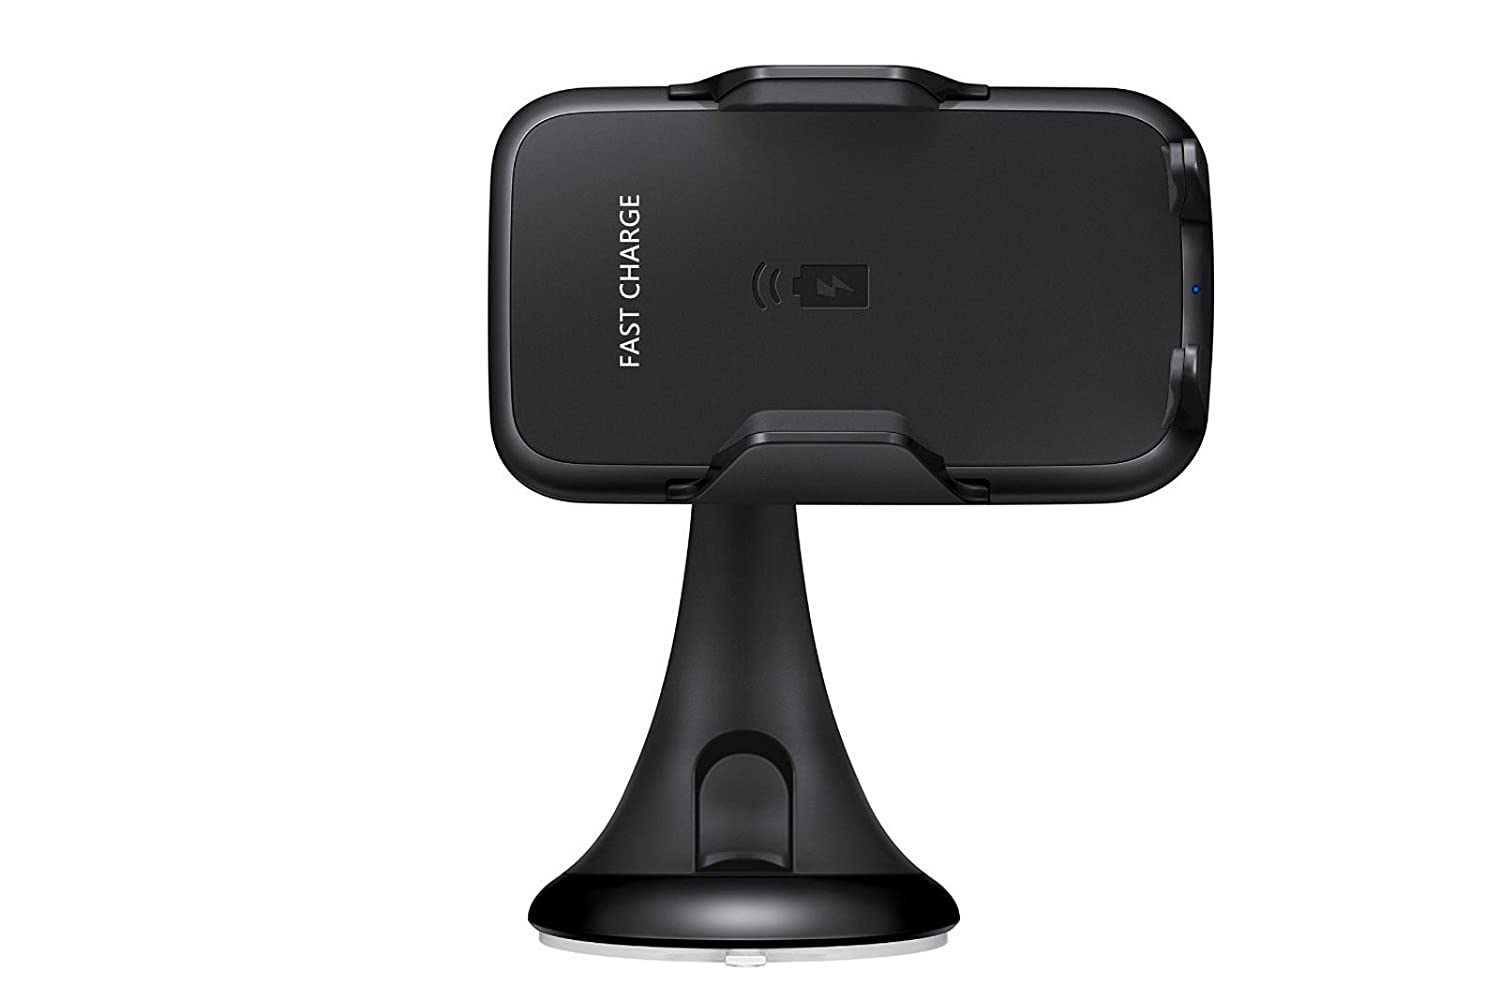 Note 8 5 /& Standard Charge for iPhone X S7//S7 Edge 8//8 Plus /& Qi Enabled Devices CW12S Suction Mount LY Lian LifeStyle Qi Wireless Fast Charge Car Mount for Samsung Galaxy S8